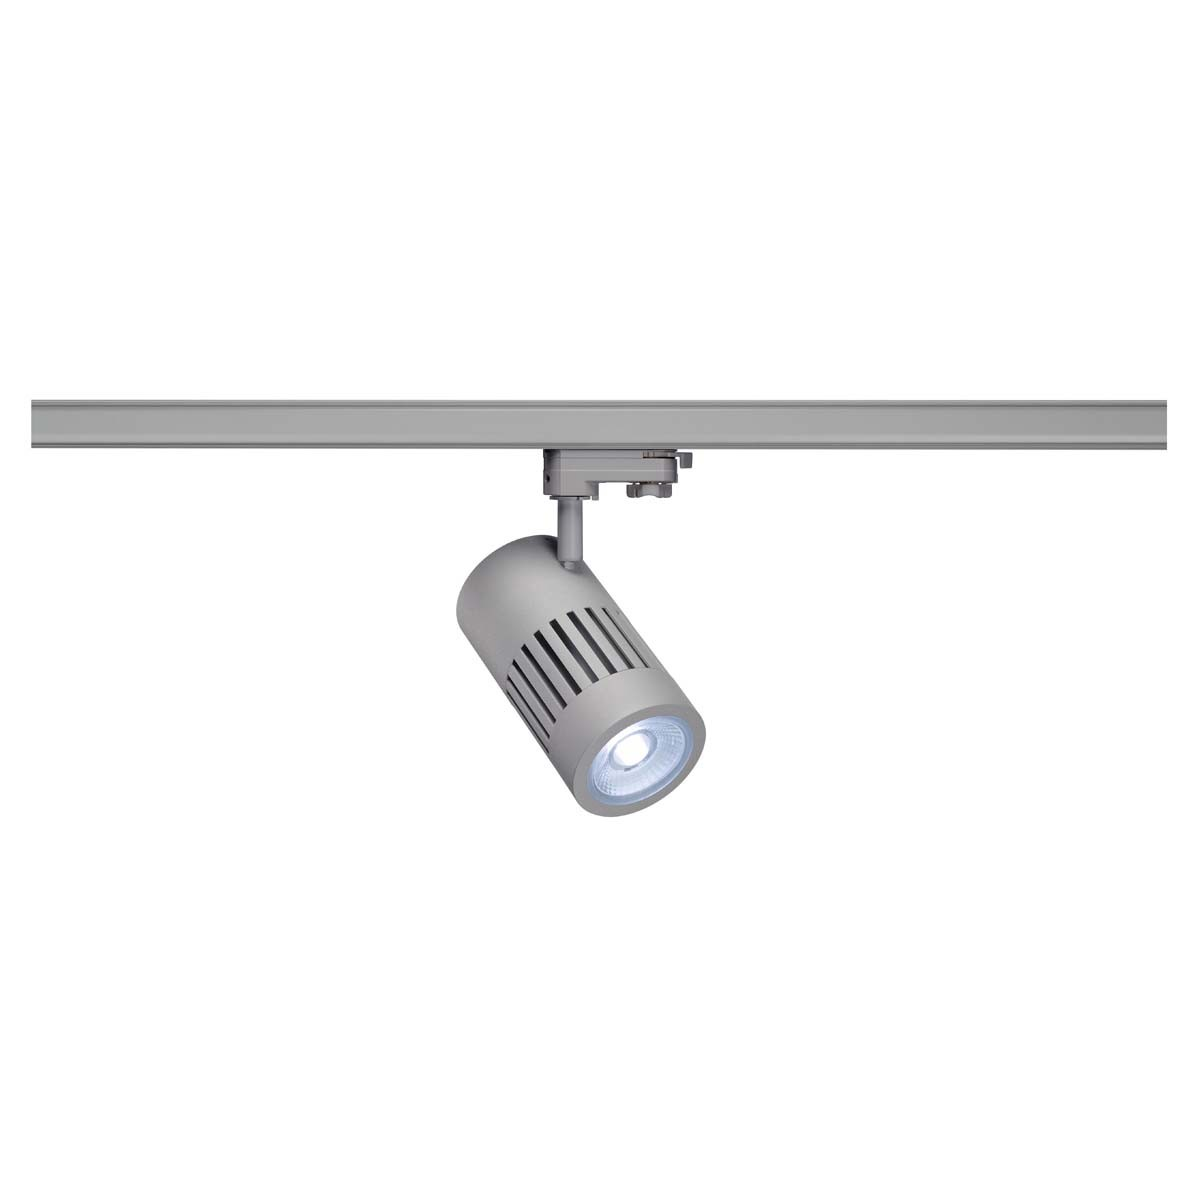 SLV 176064 STRUCTEC LED 30W, round, silver, 4000K, 36°, incl. 3-phase adapter